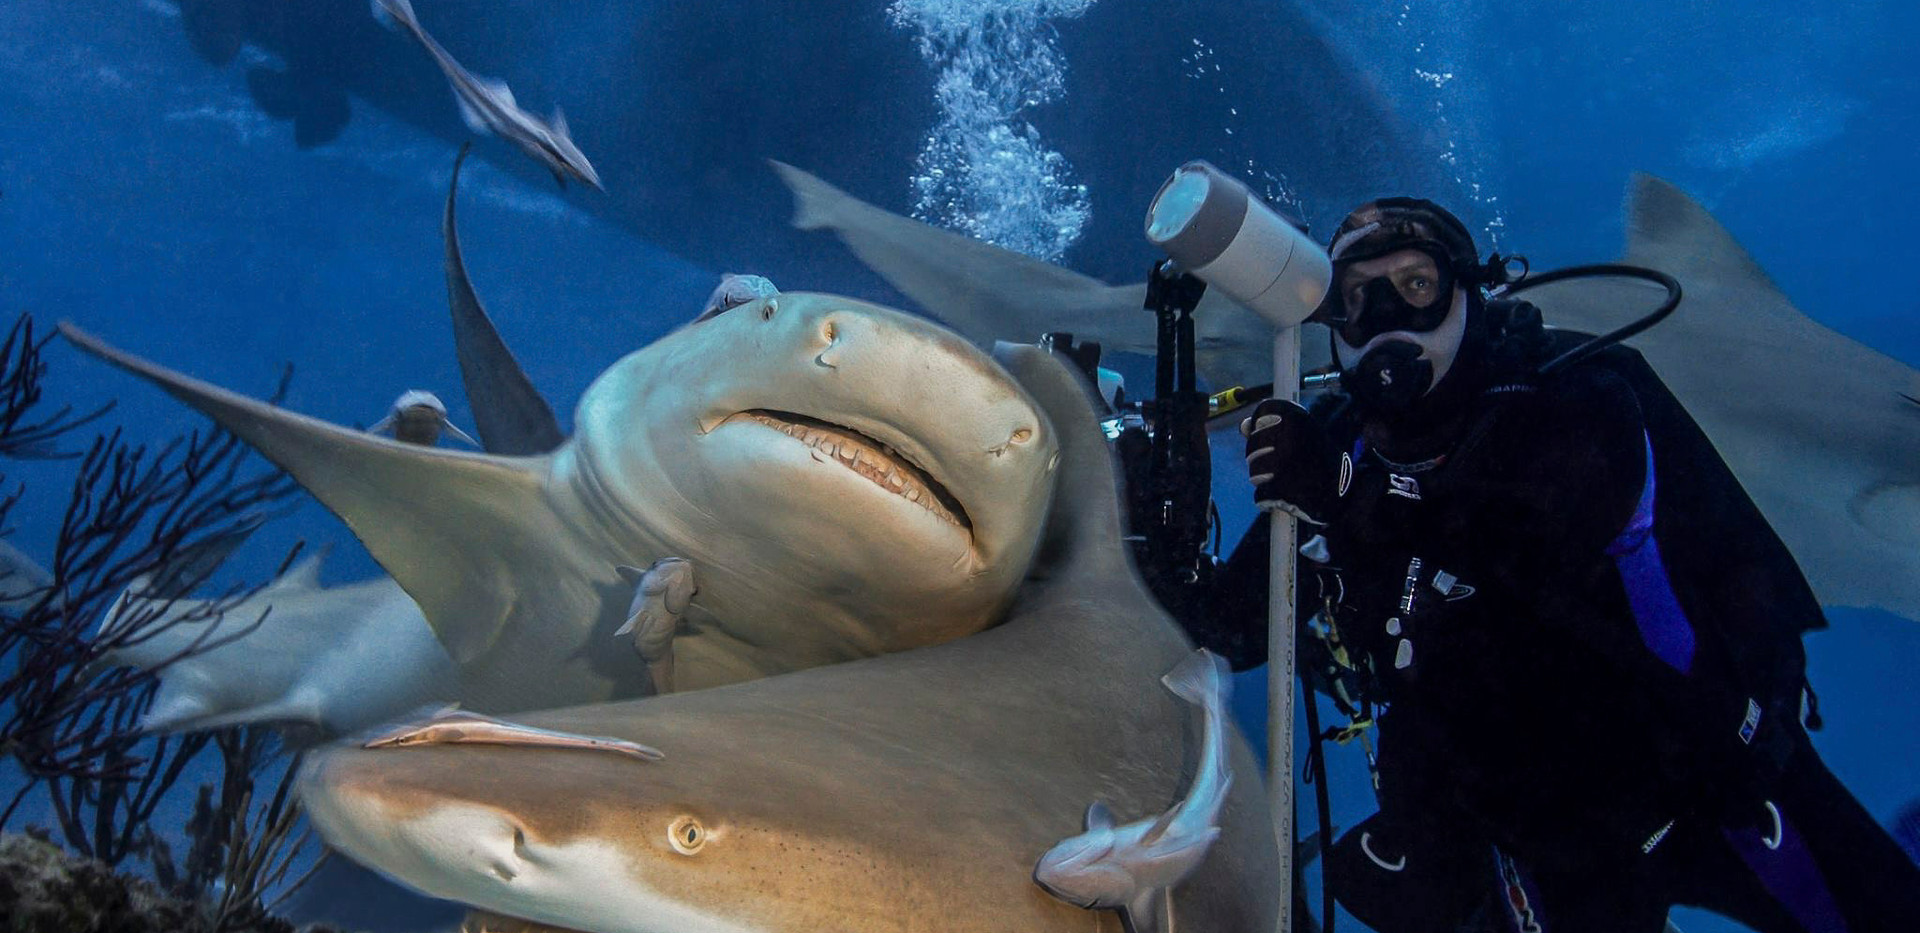 Diving with sharks at Tiger Beach in the Bahamas